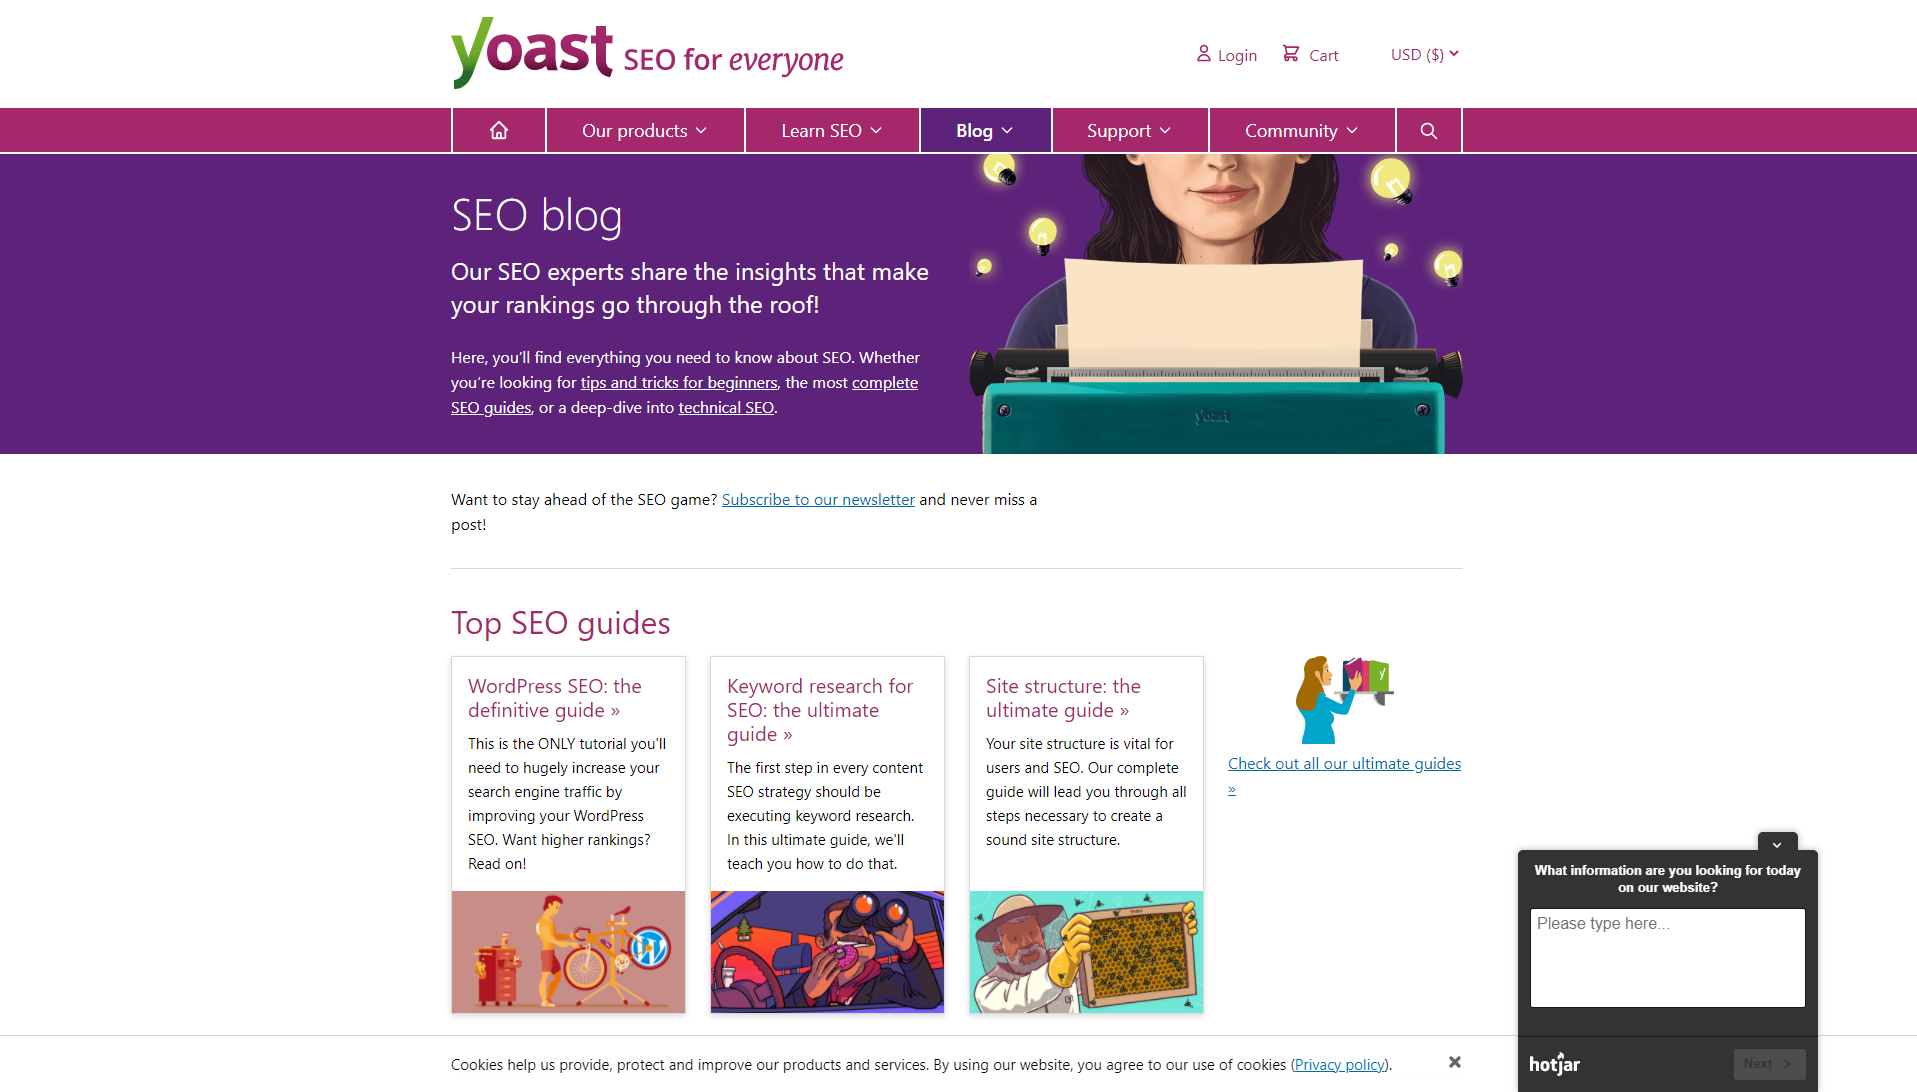 Migrate from Yoast to Rank Math | Easily Switch from Yoast to Rank Math Fast - Yoast SEO Support page on tehir website